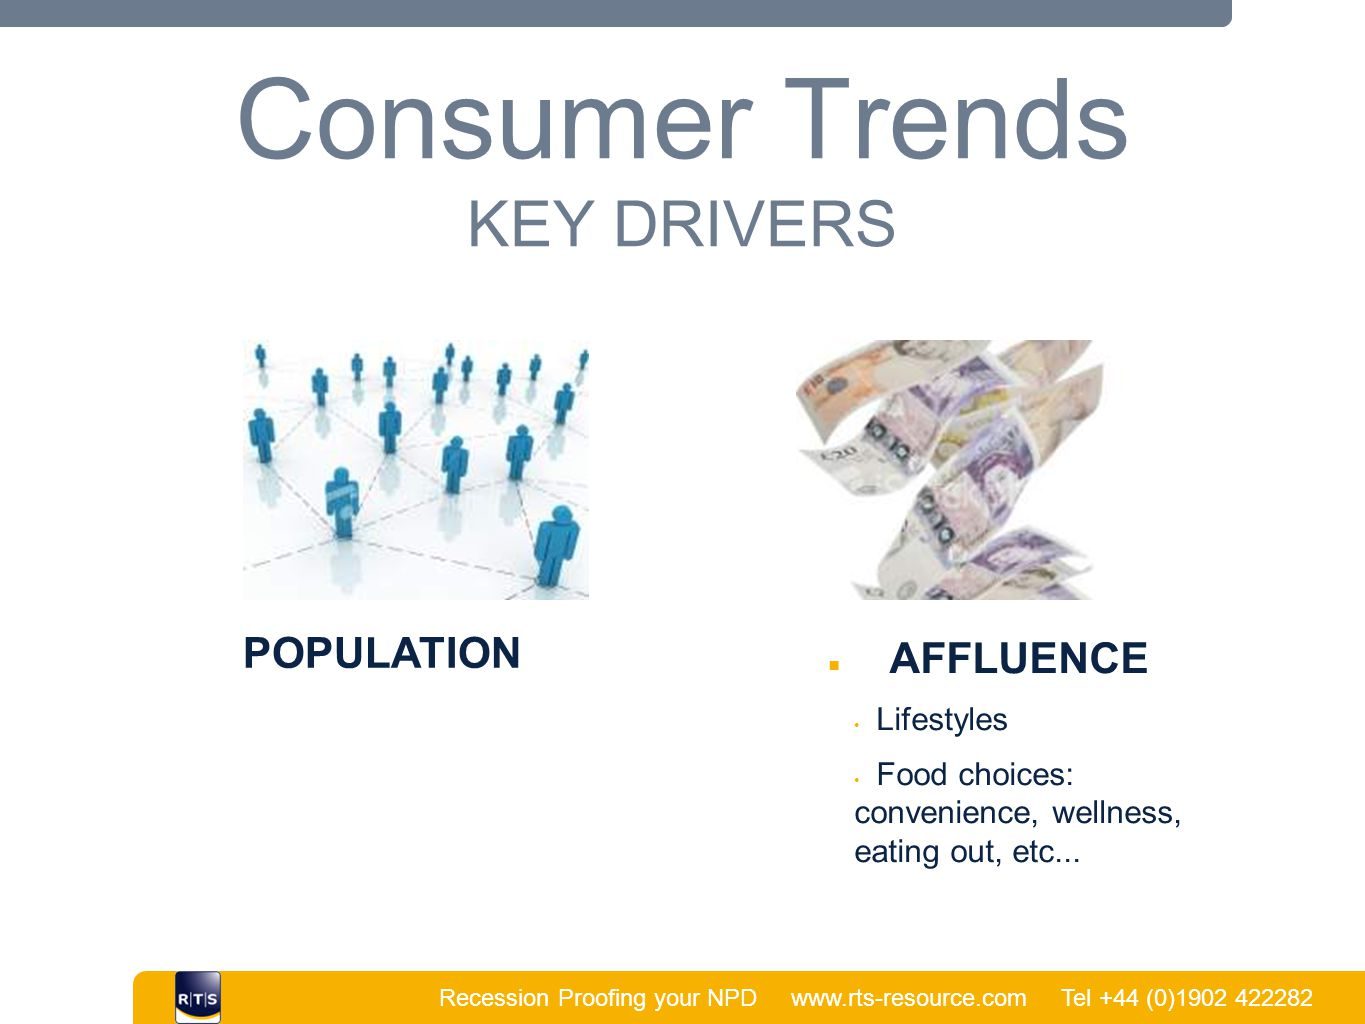 Recession Proofing your NPD www.rts-resource.com Tel +44 (0)1902 422282 | Consumer Trends KEY DRIVERS POPULATION ■ AFFLUENCE Lifestyles Food choices: